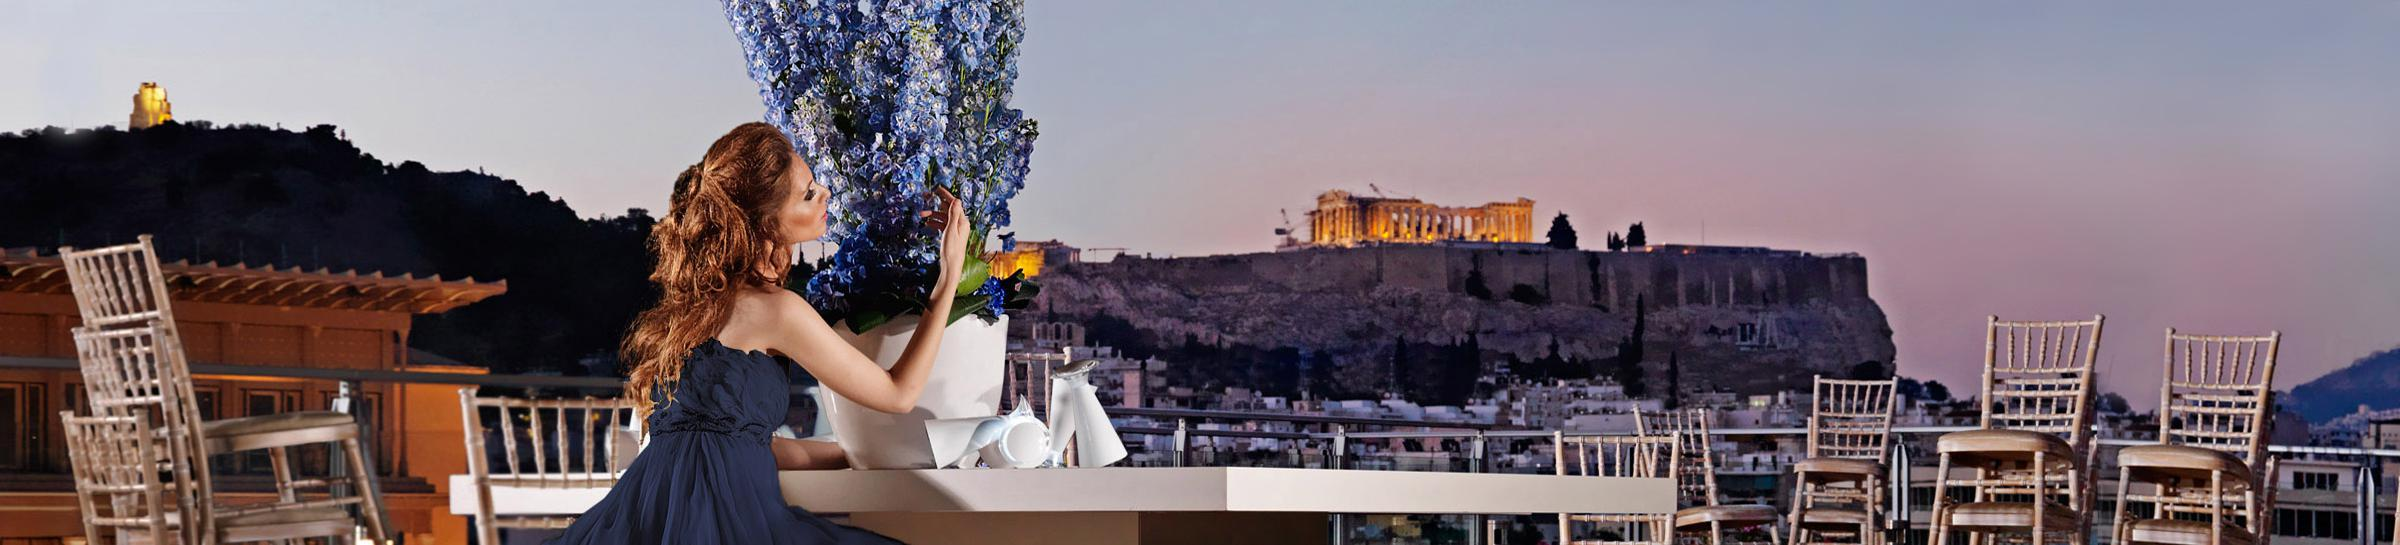 HIGH PRESTIGIOUS EVENTS WITH THE ACROPOLIS ON THE BACKDROP